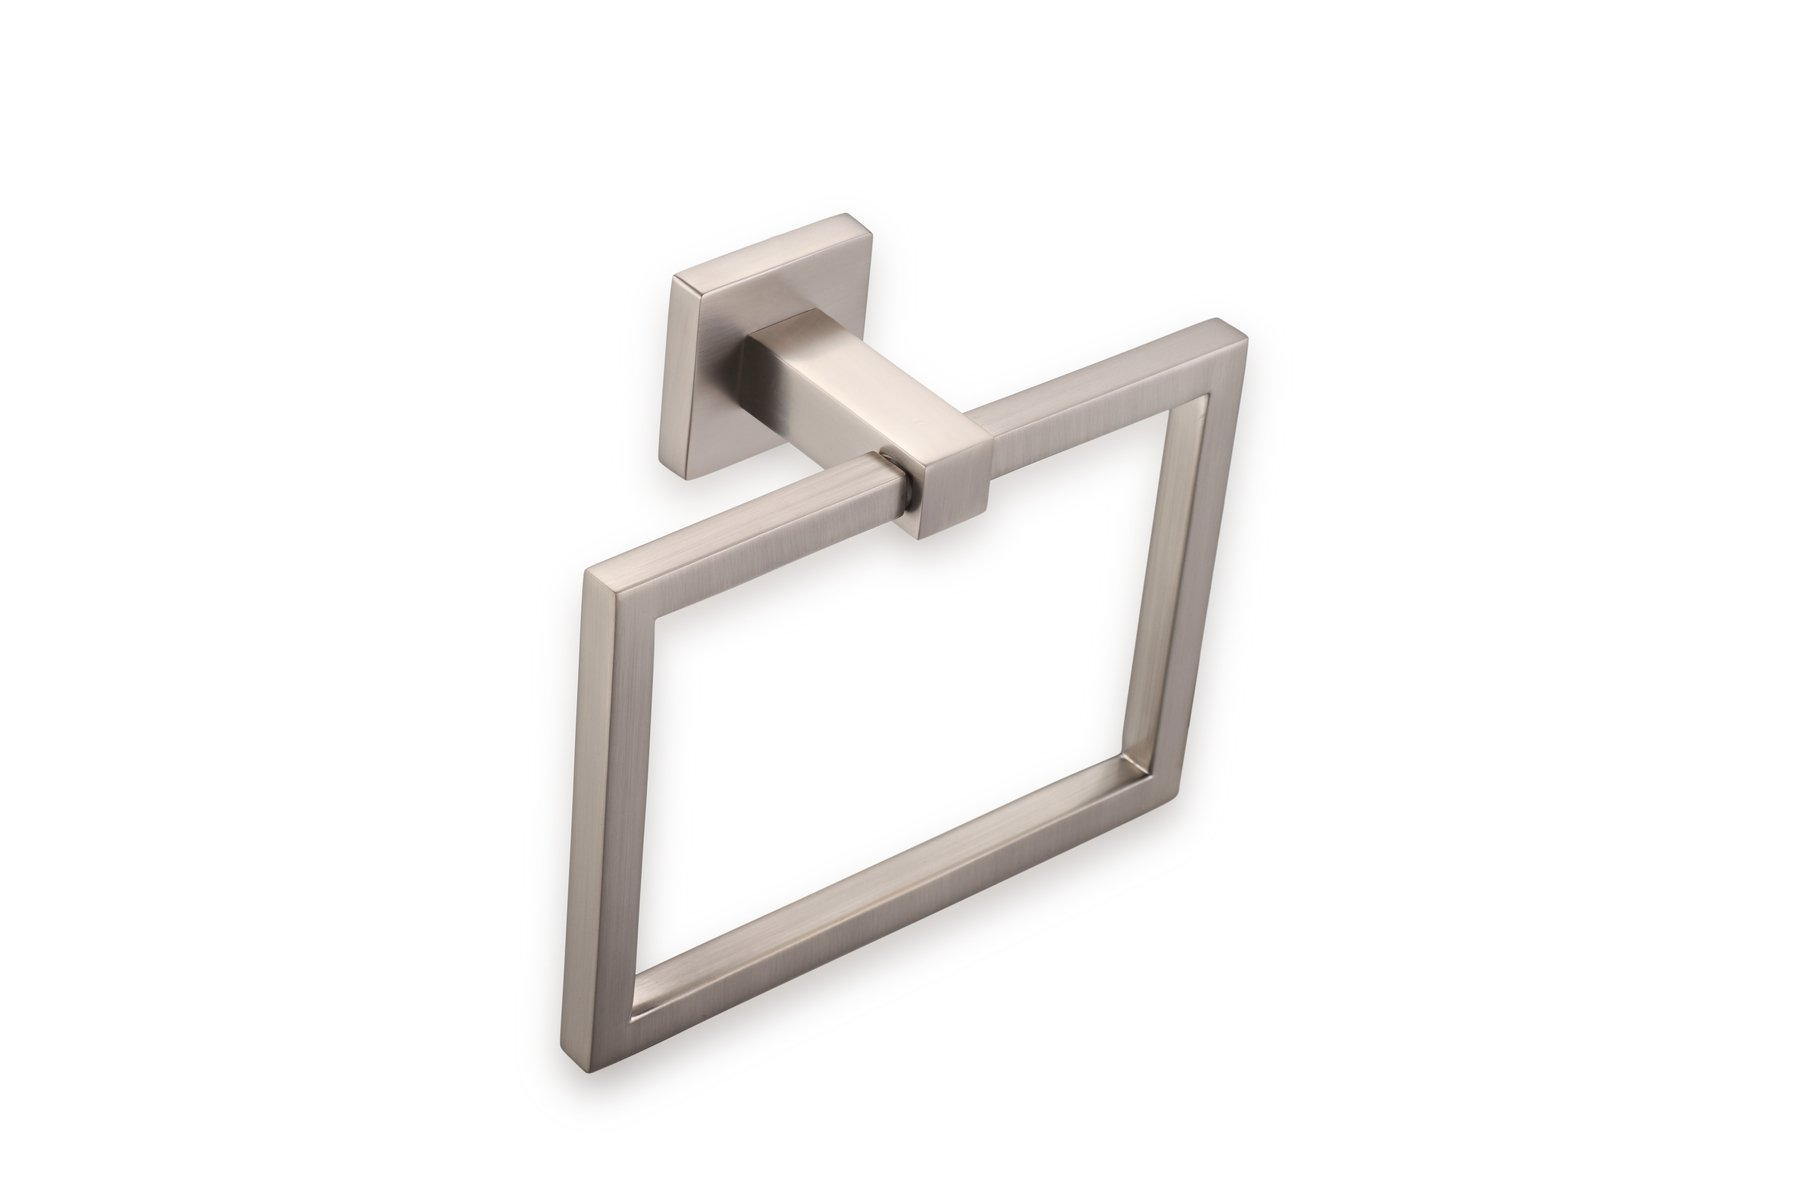 MAKYYE Mitte Towel Ring | Modern Rectangular Wall Mount Towel Holder for Bathroom Lavatory, Shower, Kitchen Brushed Nickel, OYA1041302